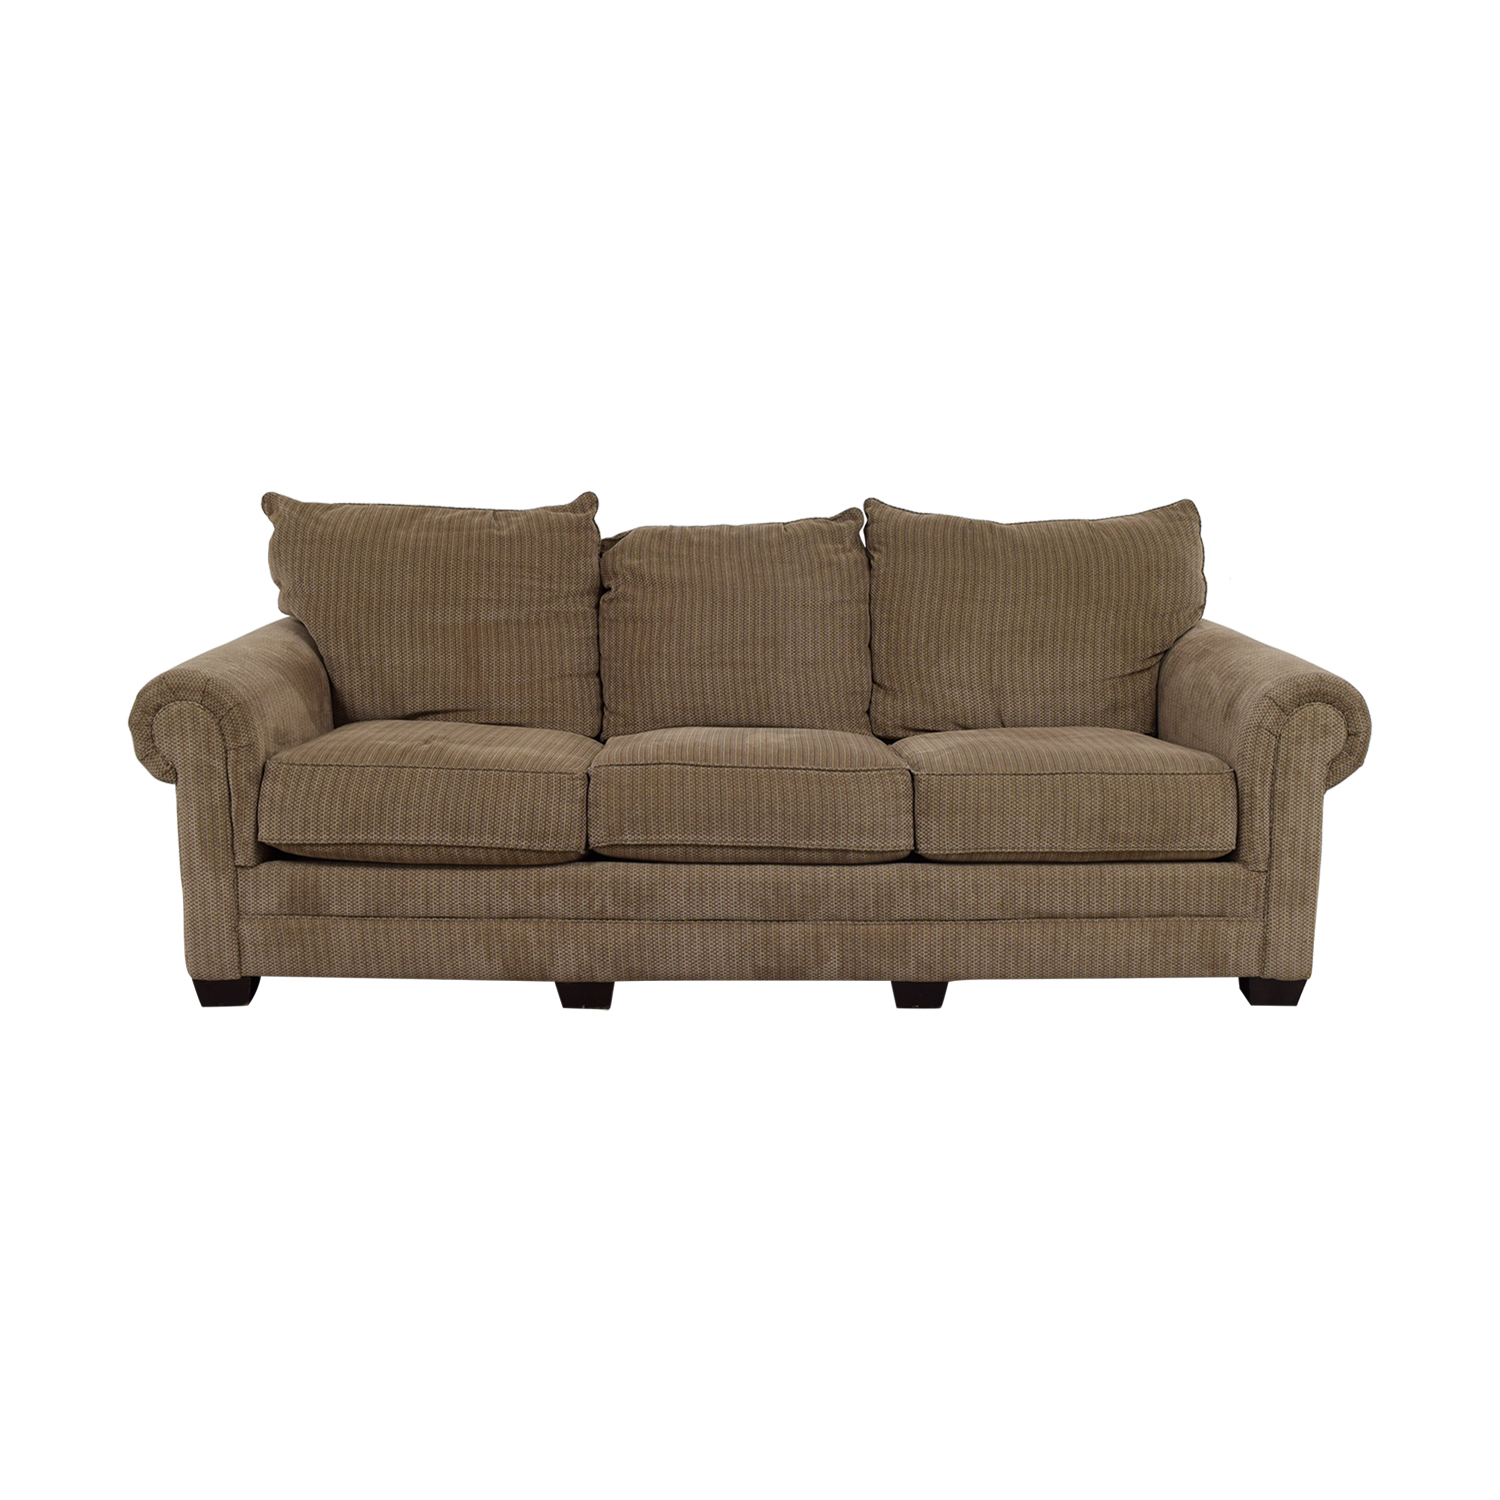 buy Tan Three-Cushion Couch Sofas